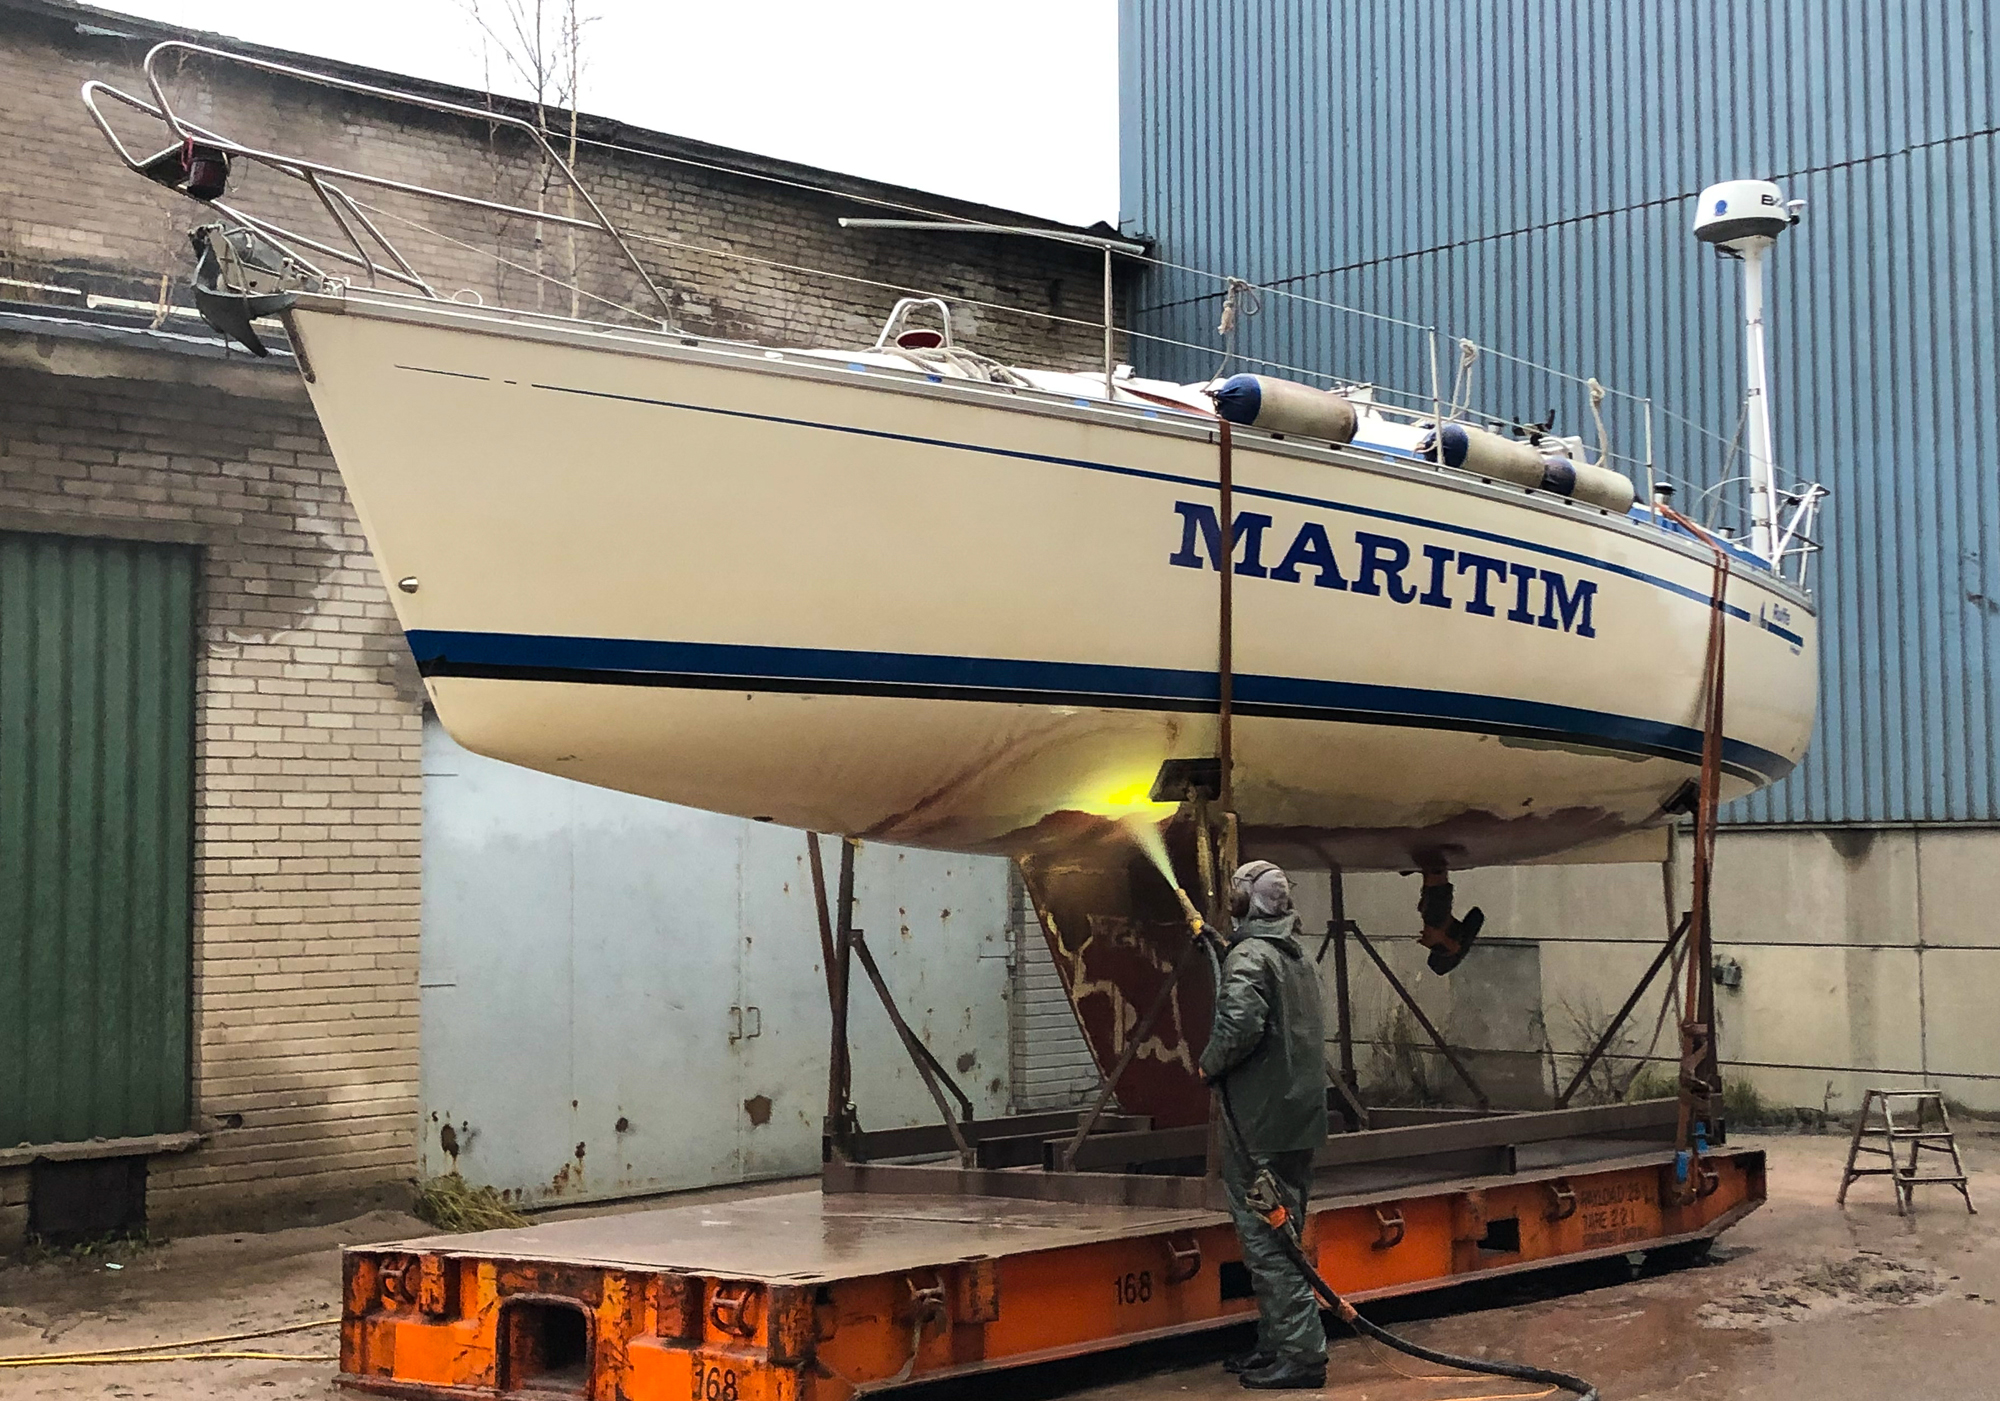 Sailing boat hull with a patchwork of anti-fouling paints for studying biofouling growth